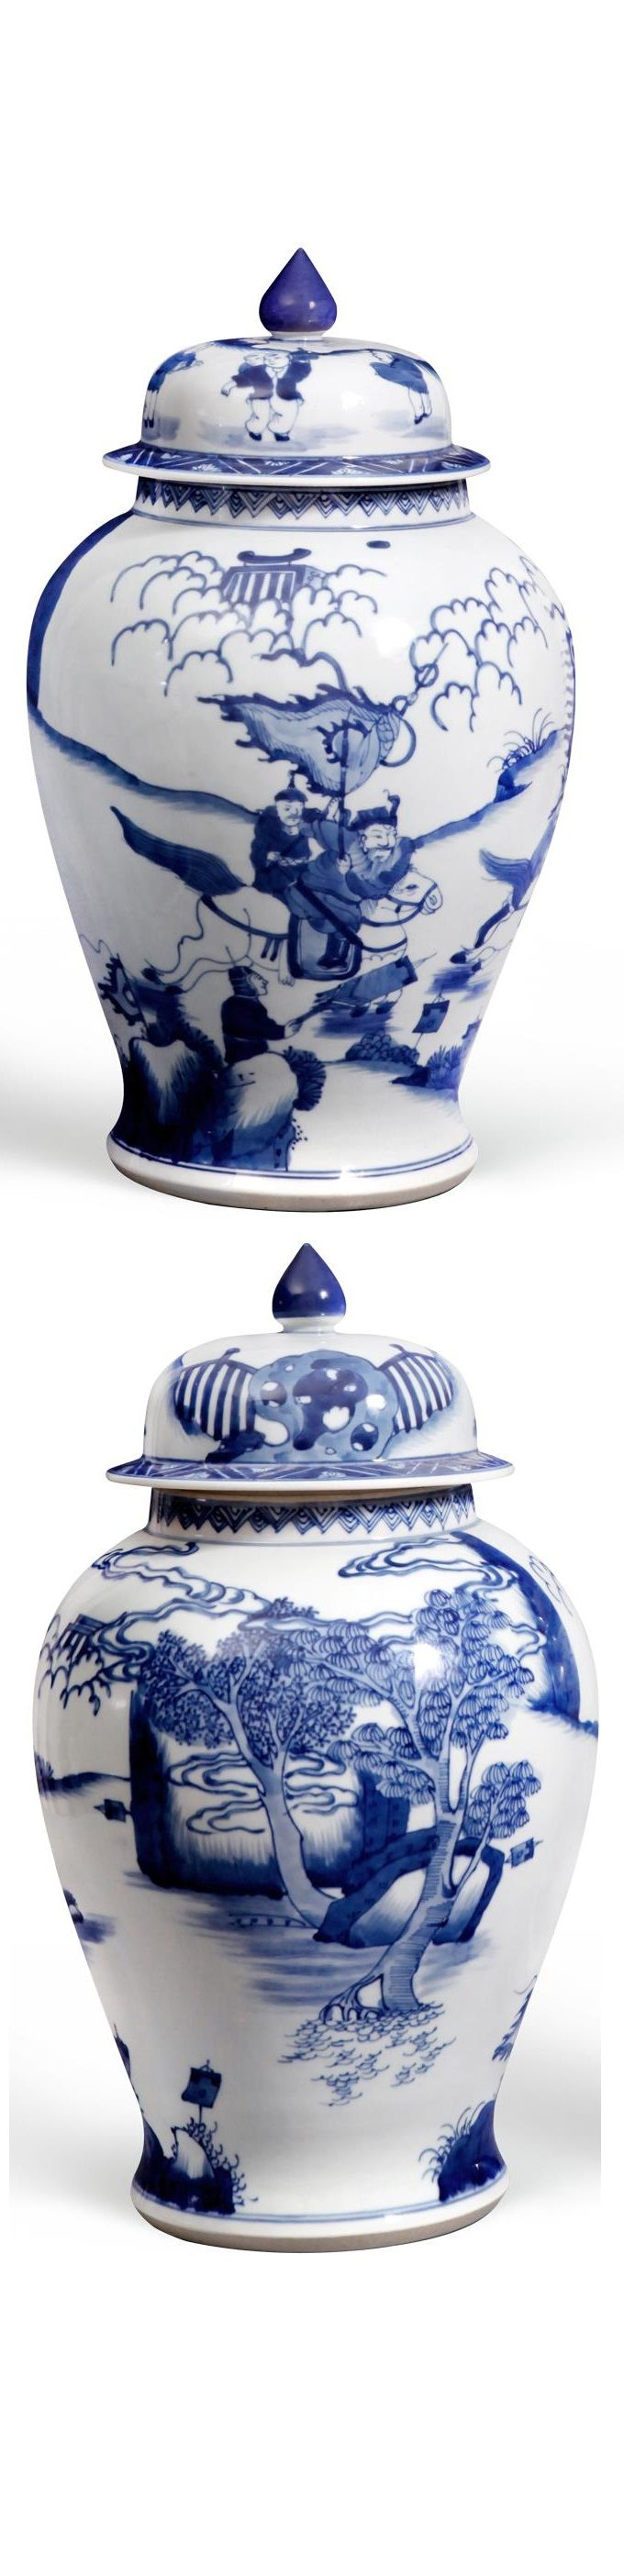 """""""Chinese Porcelain"""" """"Chinese Vases"""" """"Chinese Jars"""" Collector Pieces By InStyle-Decor.com Hollywood, for more beautiful """"Chinese Porcelain"""" inspirations use our site search box term """"Porcelain"""" chinese vase, chinese vases, chinese jar, chinese jars, chinese temple jar, chinese temple jars, chinese ginger jar, chinese ginger jars, chinese porcelain vase, chinese porcelain vases,chinese porcelain jar, chinese porcelain jars, chinese porcelain temple jar, chinese porcelain temple jars,"""